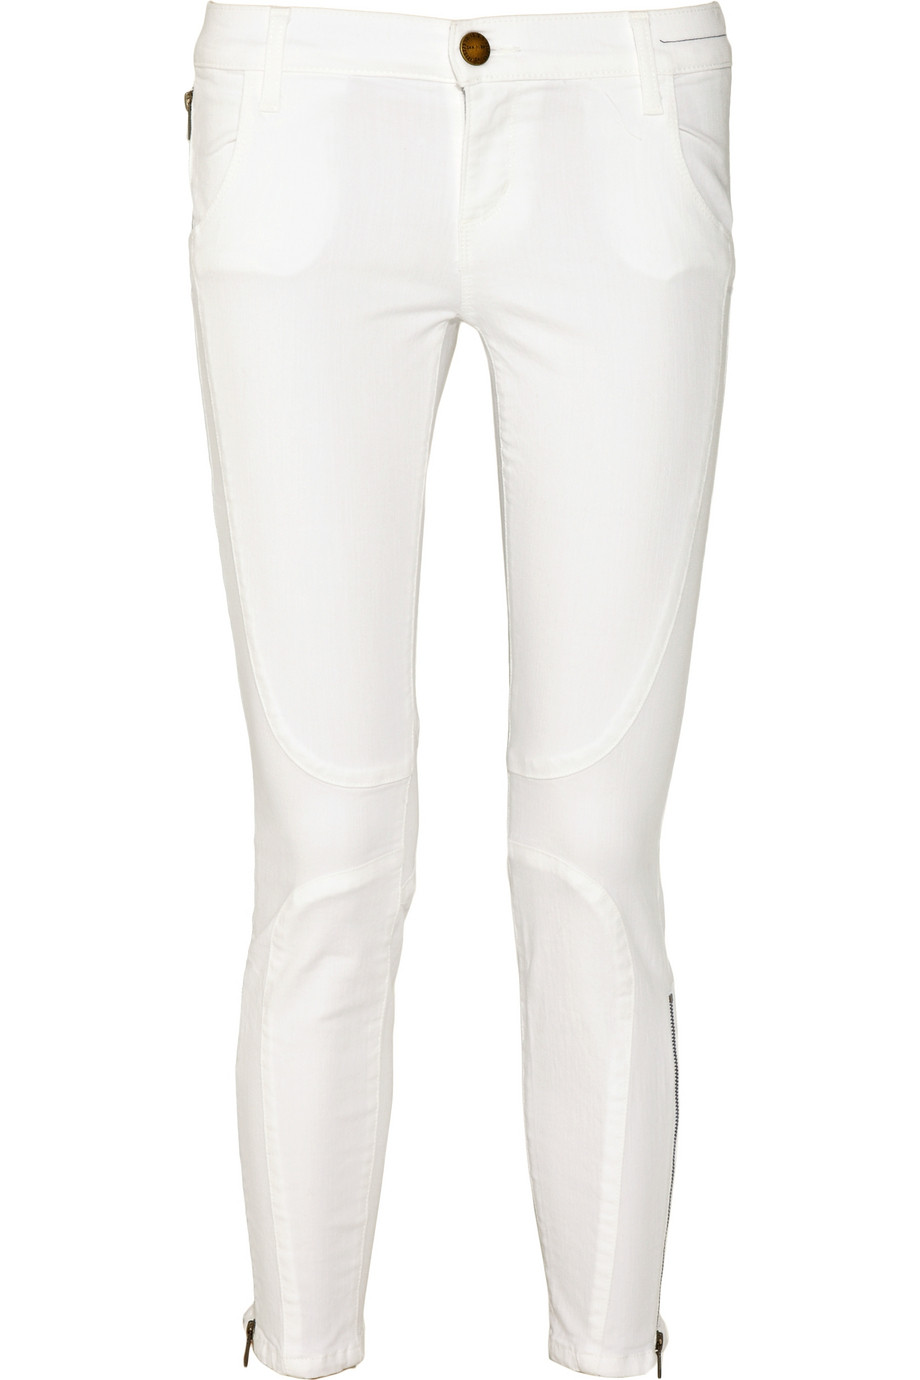 white ankle jeans - Jean Yu Beauty